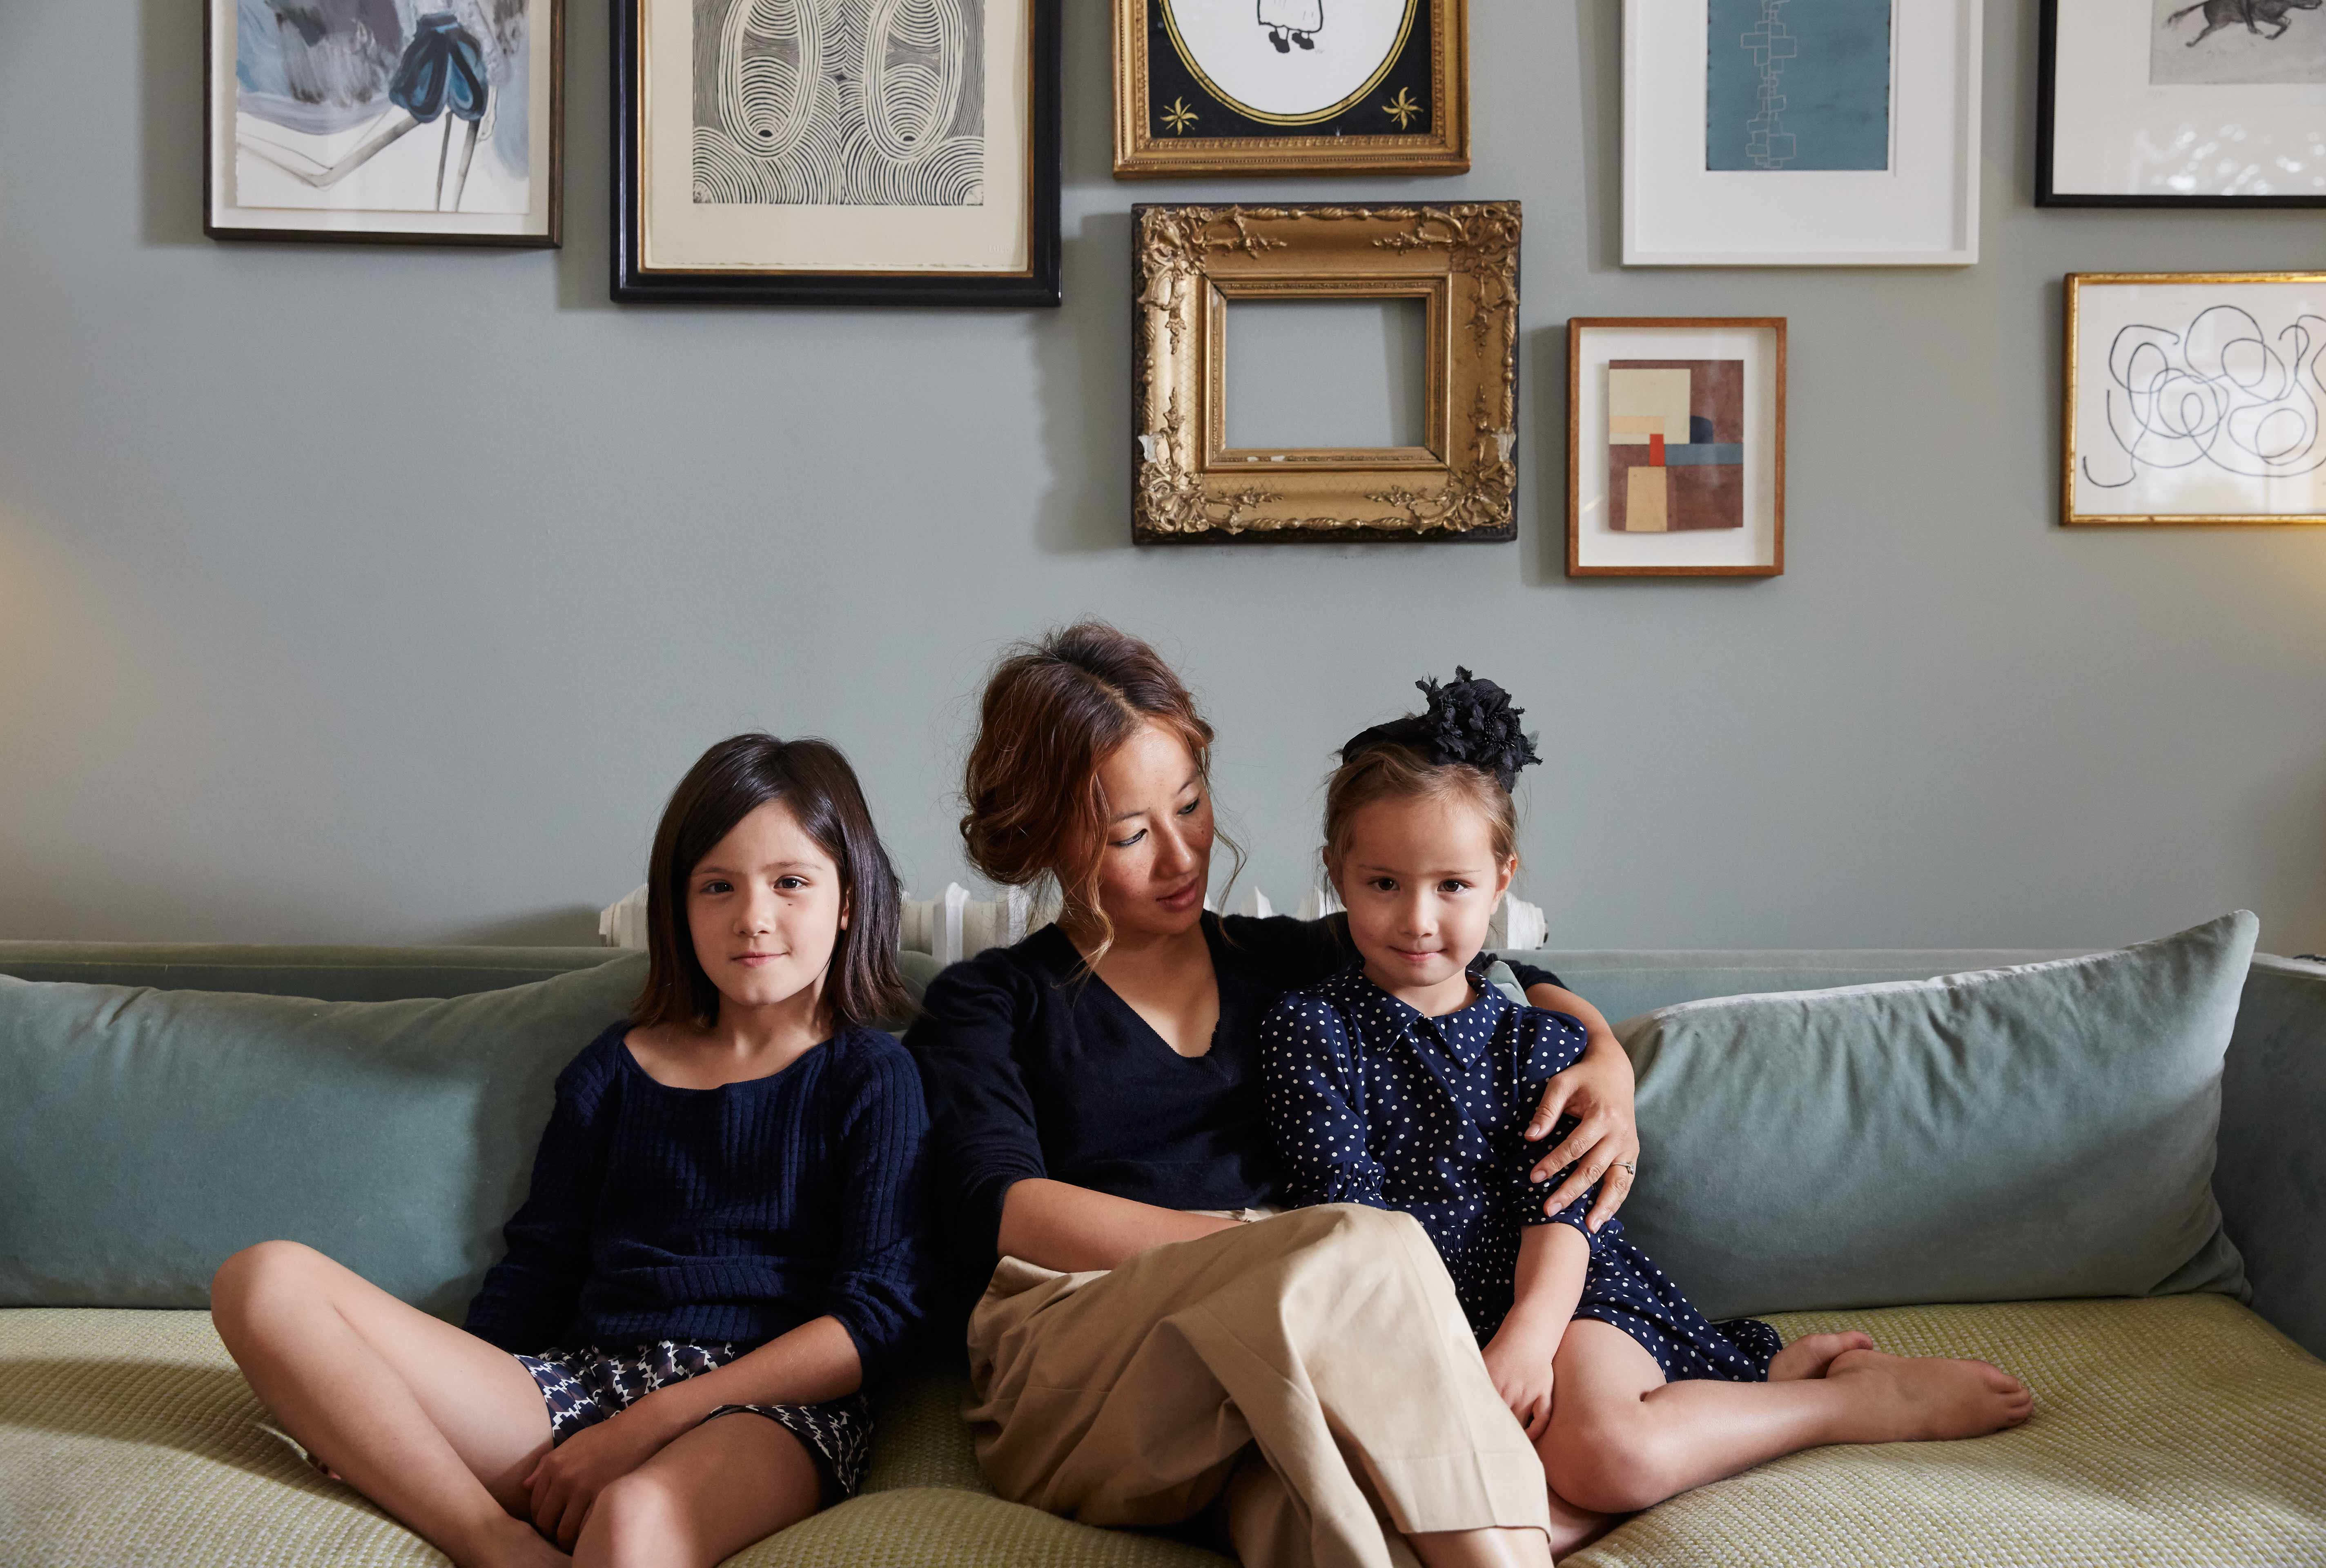 Carolyn Asome's Letter To Her Children